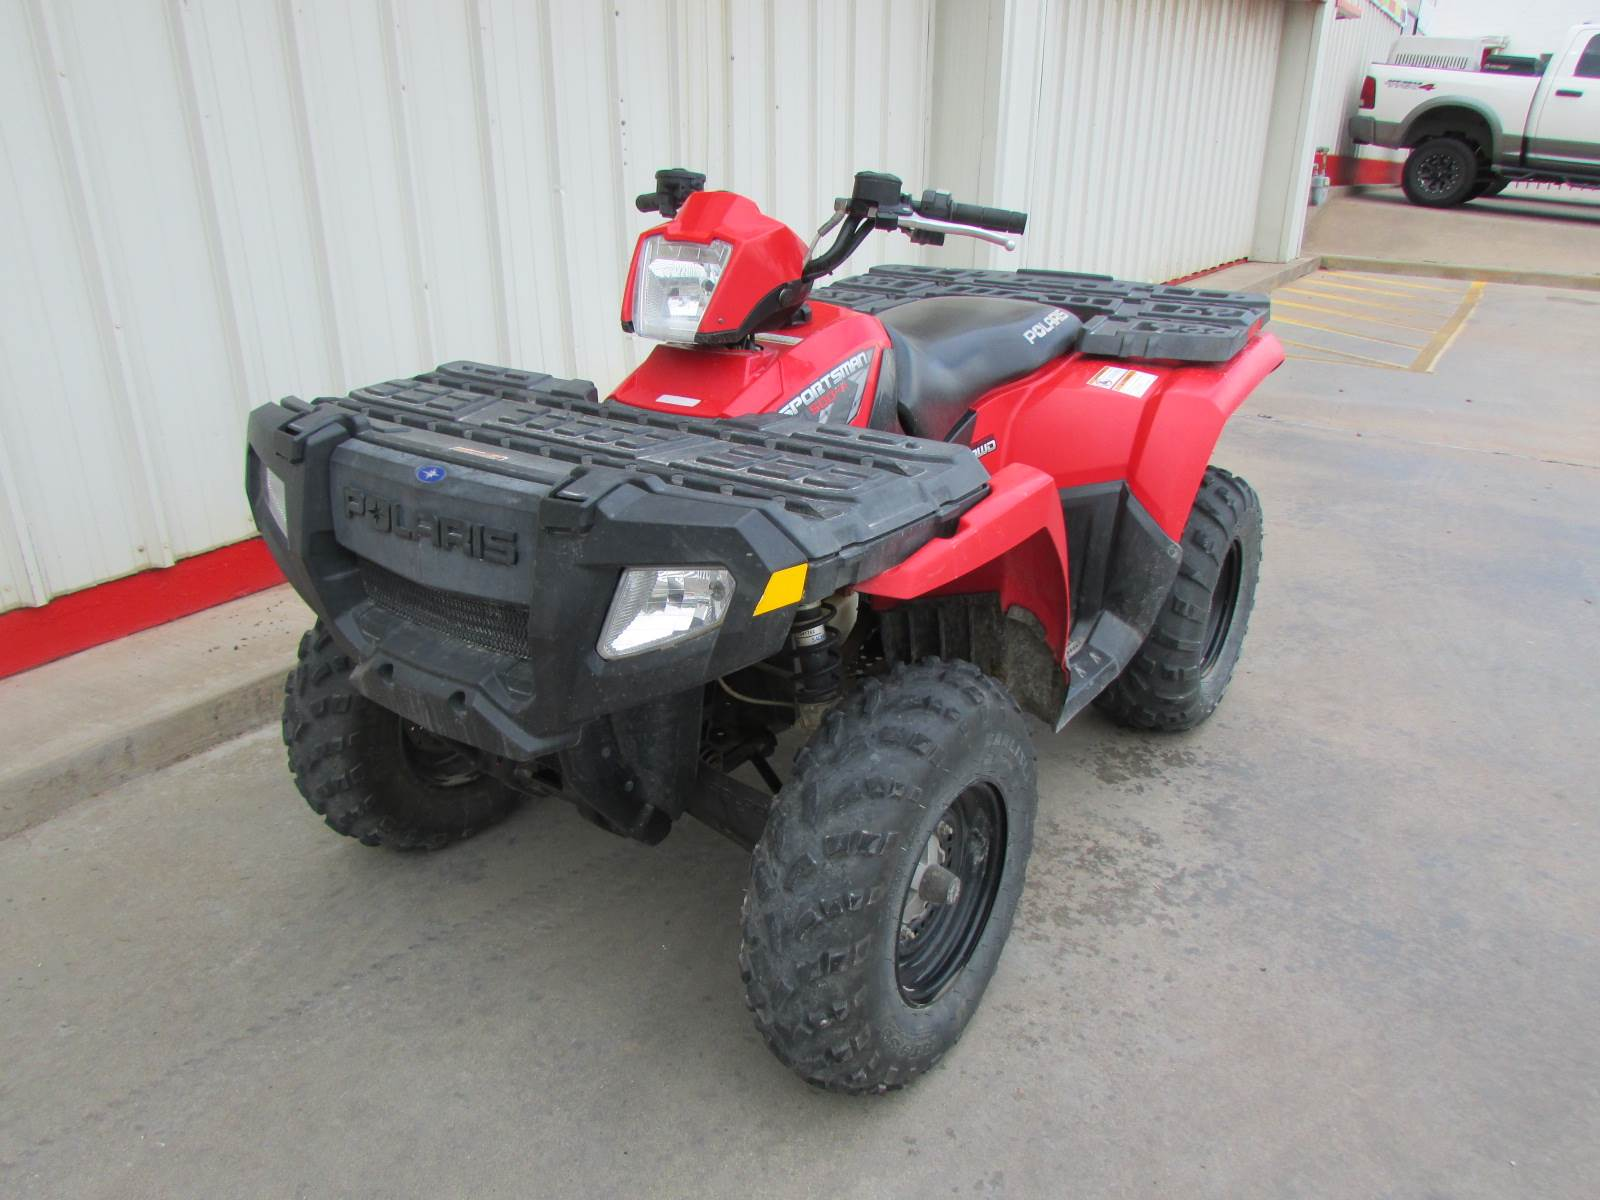 2010 Polaris Sportsman® 500 H.O. in Wichita Falls, Texas - Photo 5